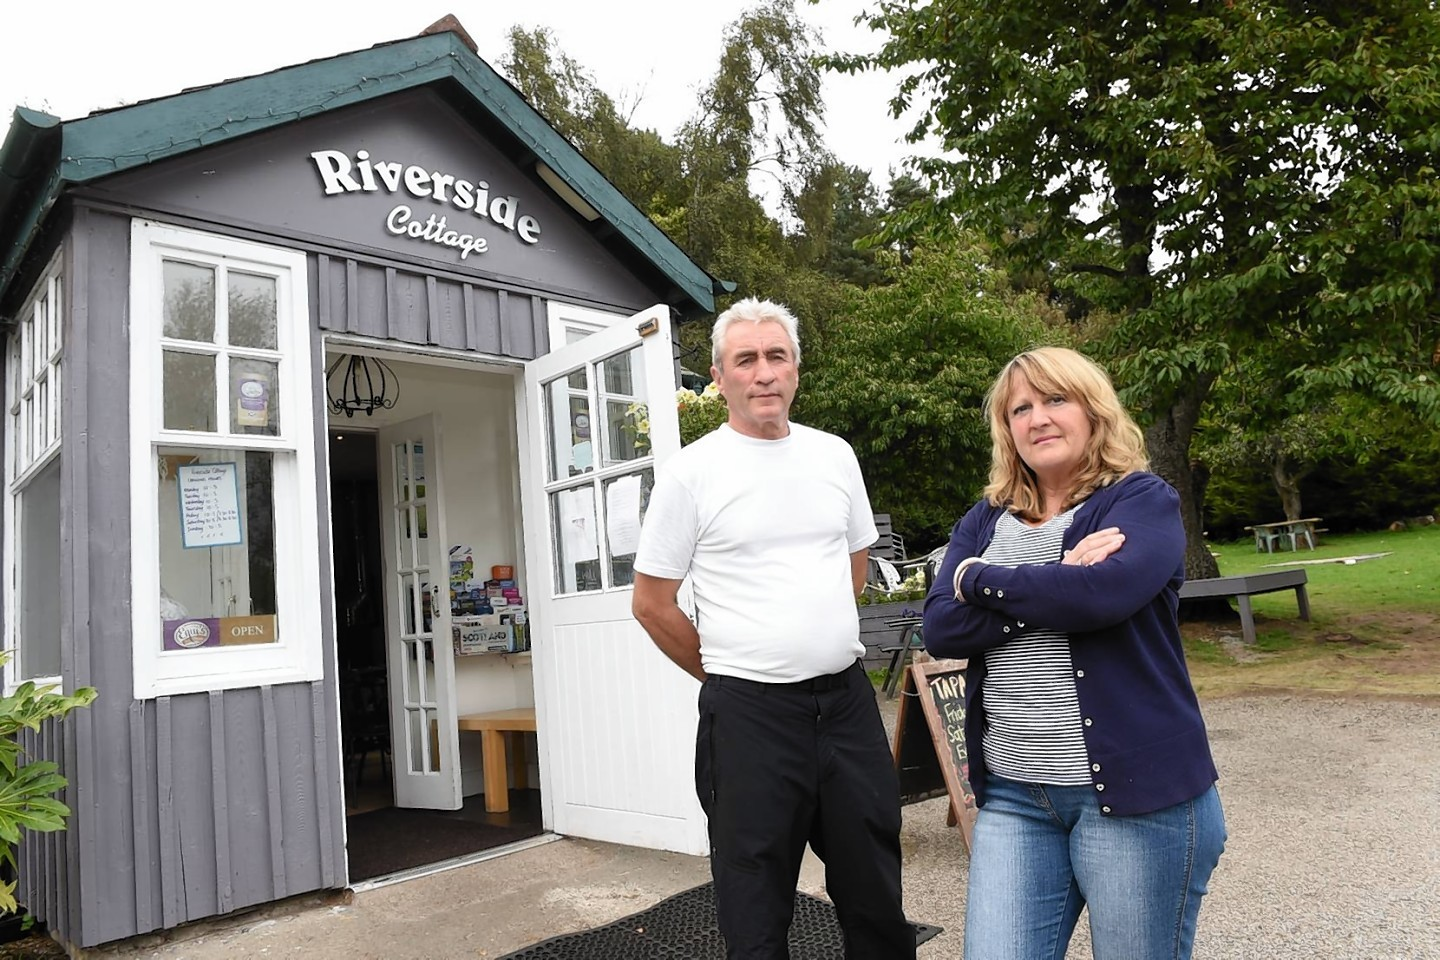 John and Wilma Doherty who are concerned about the lack of customers at their Riverside Cottage cafe due to roadworks on the A93 east of Ballater.  Picture by KEVIN EMSLIE